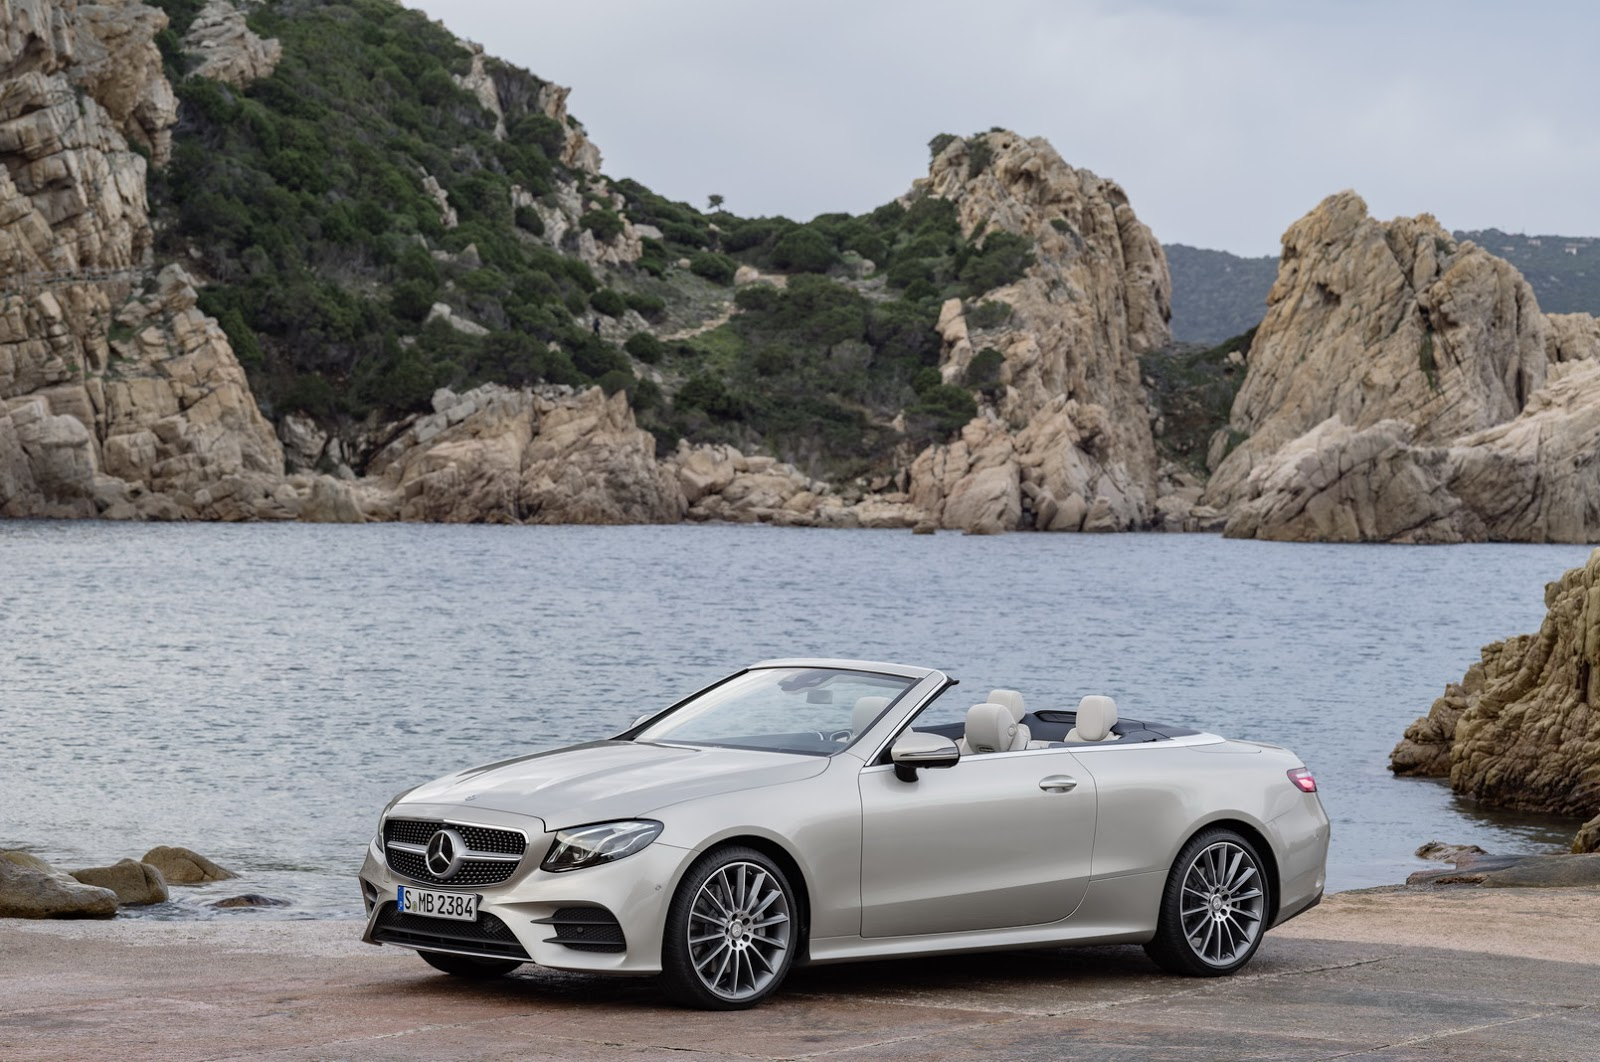 2018 mercedes benz e class convertible looks better than ever 69 pics carscoops. Black Bedroom Furniture Sets. Home Design Ideas